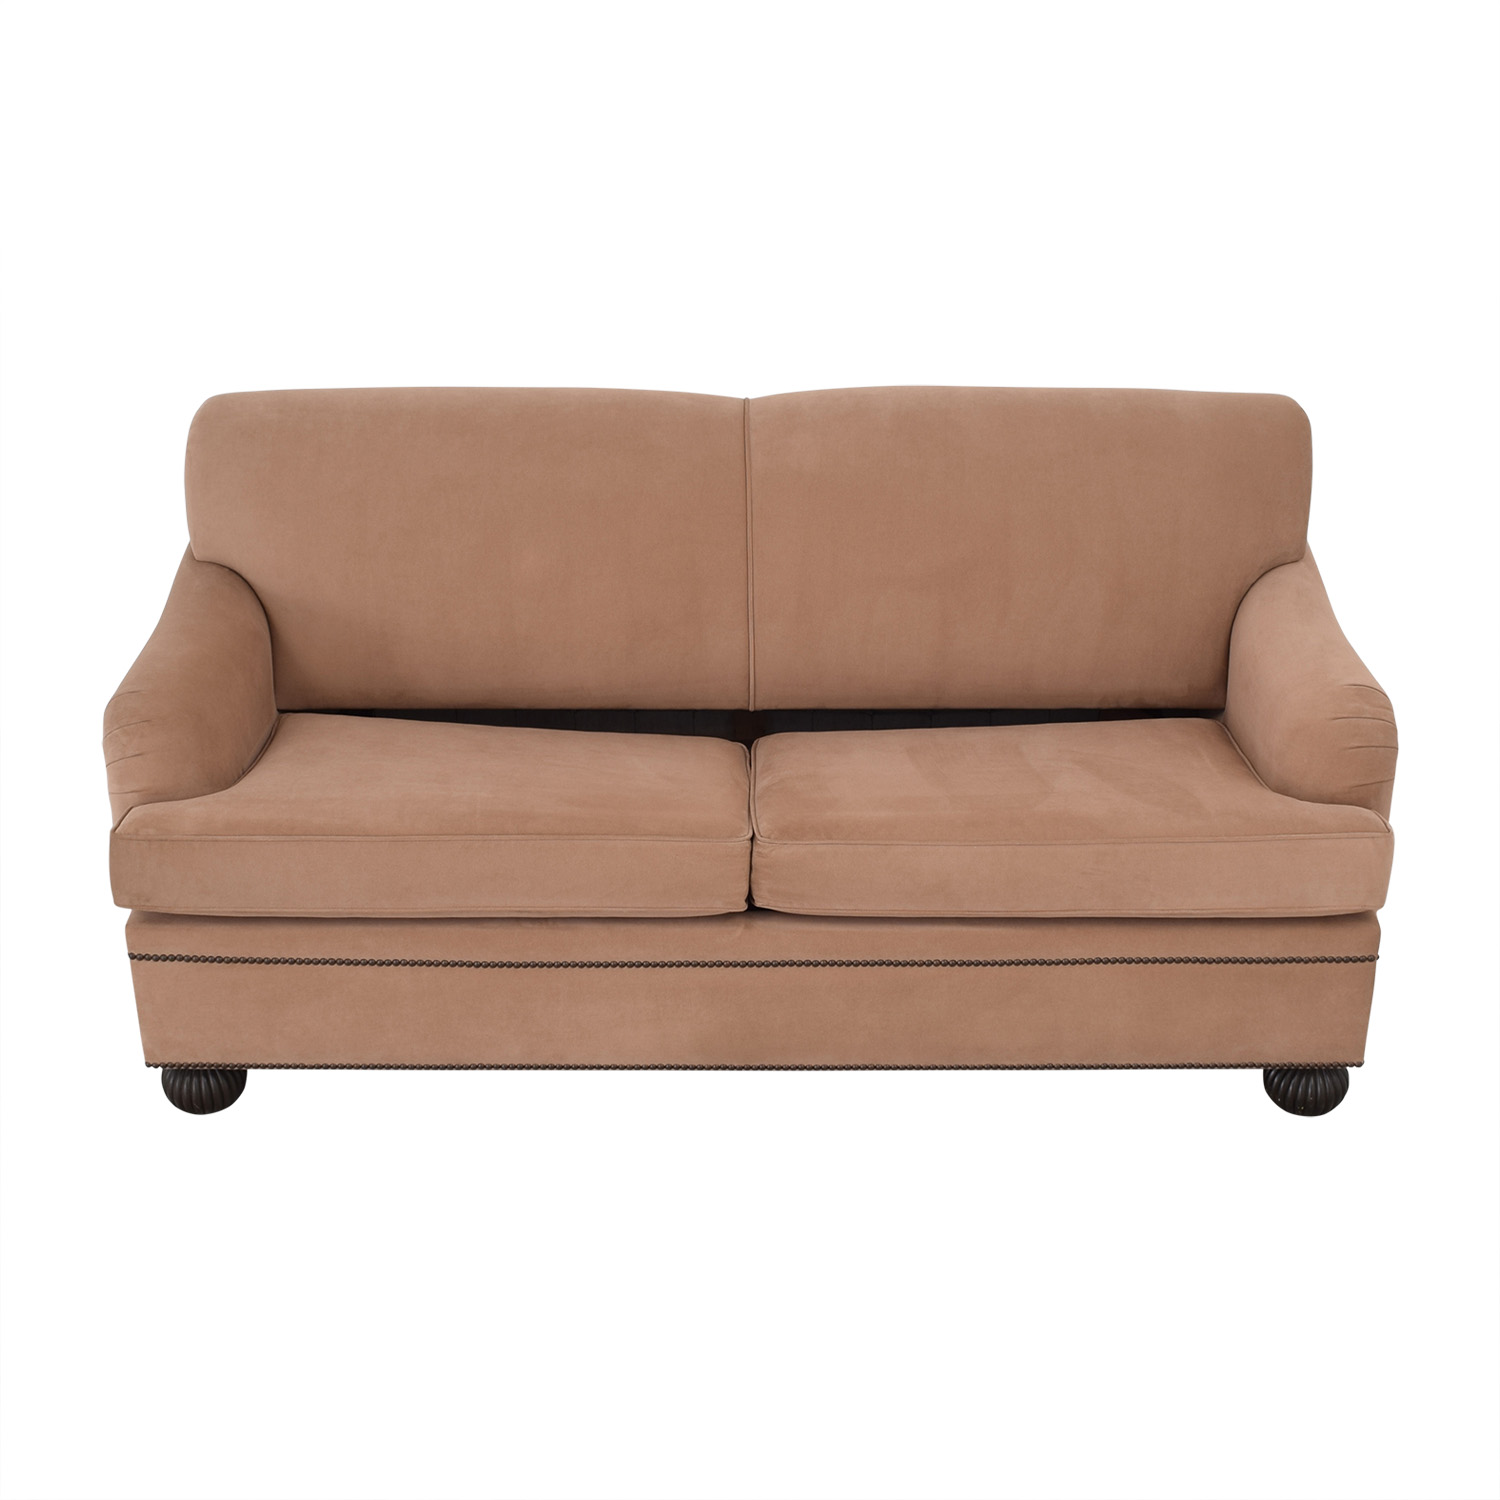 Terrific 85 Off Carlyle Carlyle Charles Of London Full Sofa Bed Sofas Spiritservingveterans Wood Chair Design Ideas Spiritservingveteransorg